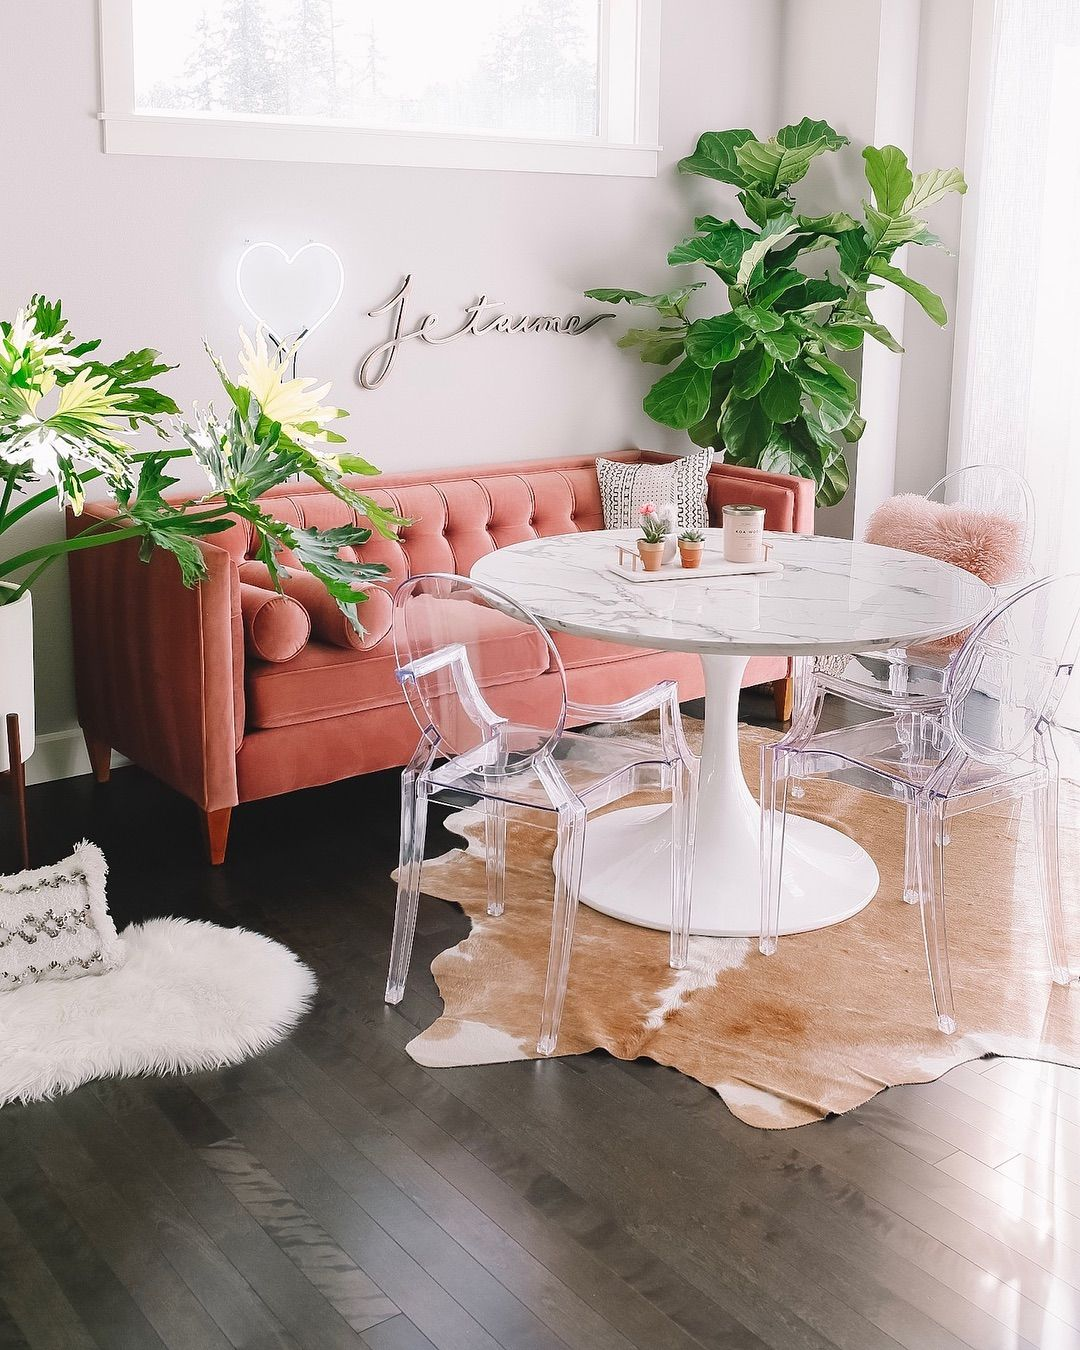 "Sabrina | Seattle Blogger on Instagram: ""For smaller space like our breakfast nook, I love the idea of using a couch or loveseat at the dining table. The acrylic chairs give the…"""